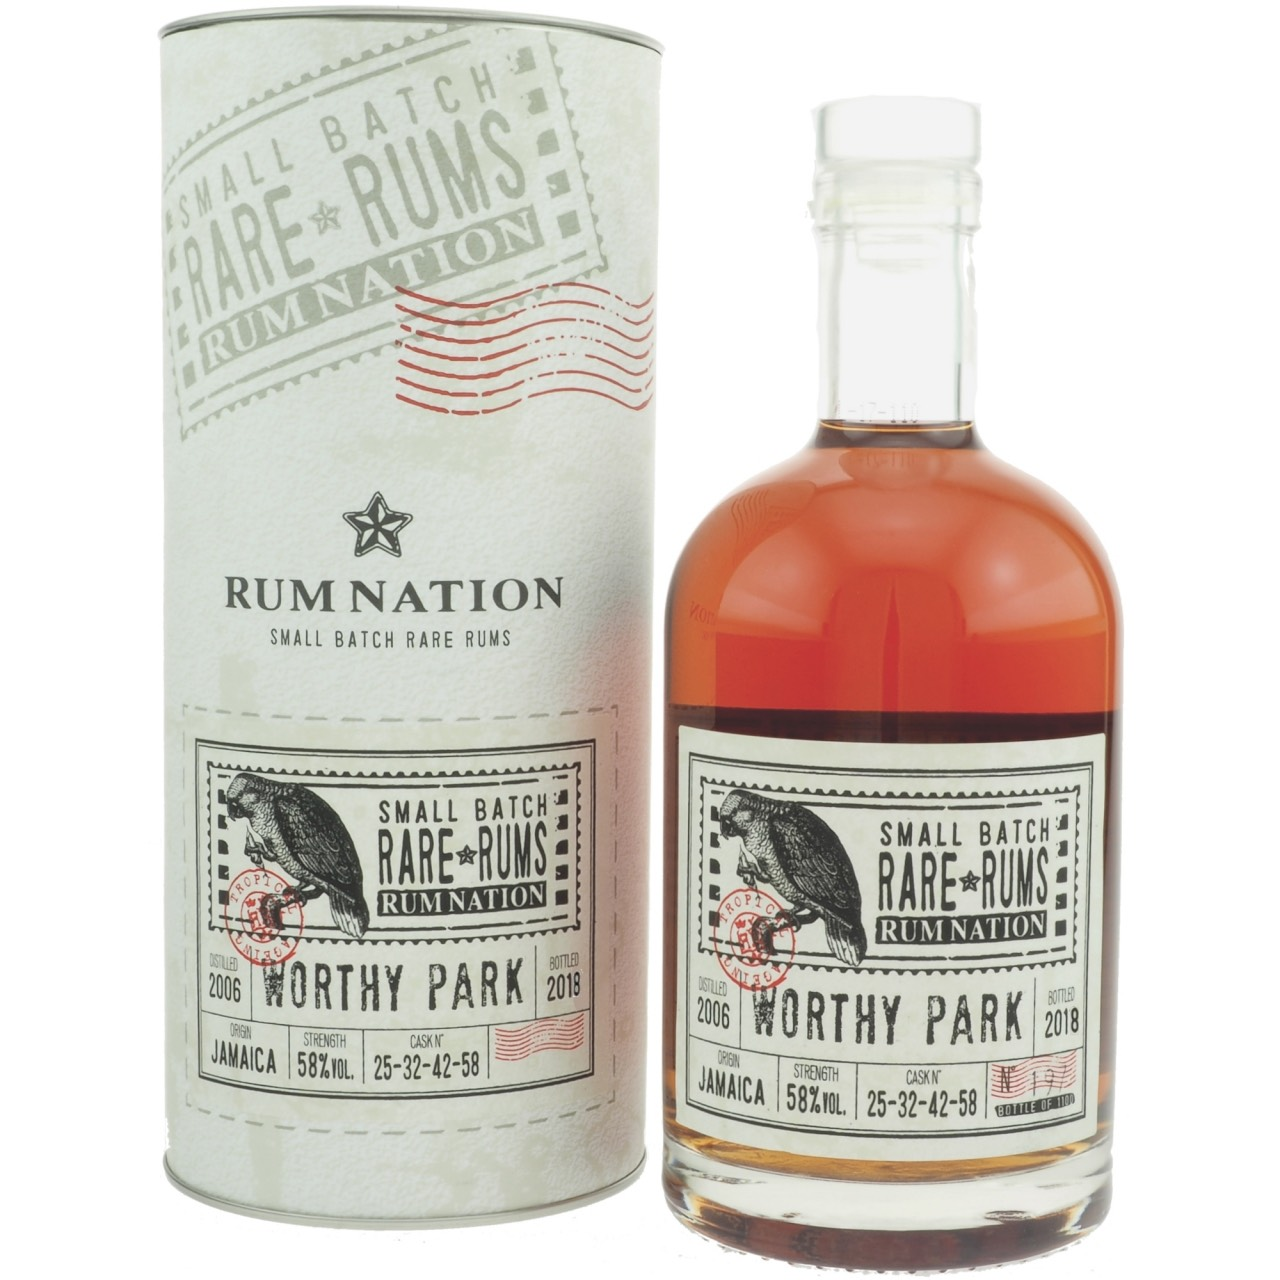 Bottle image of Small Batch Rare Rums